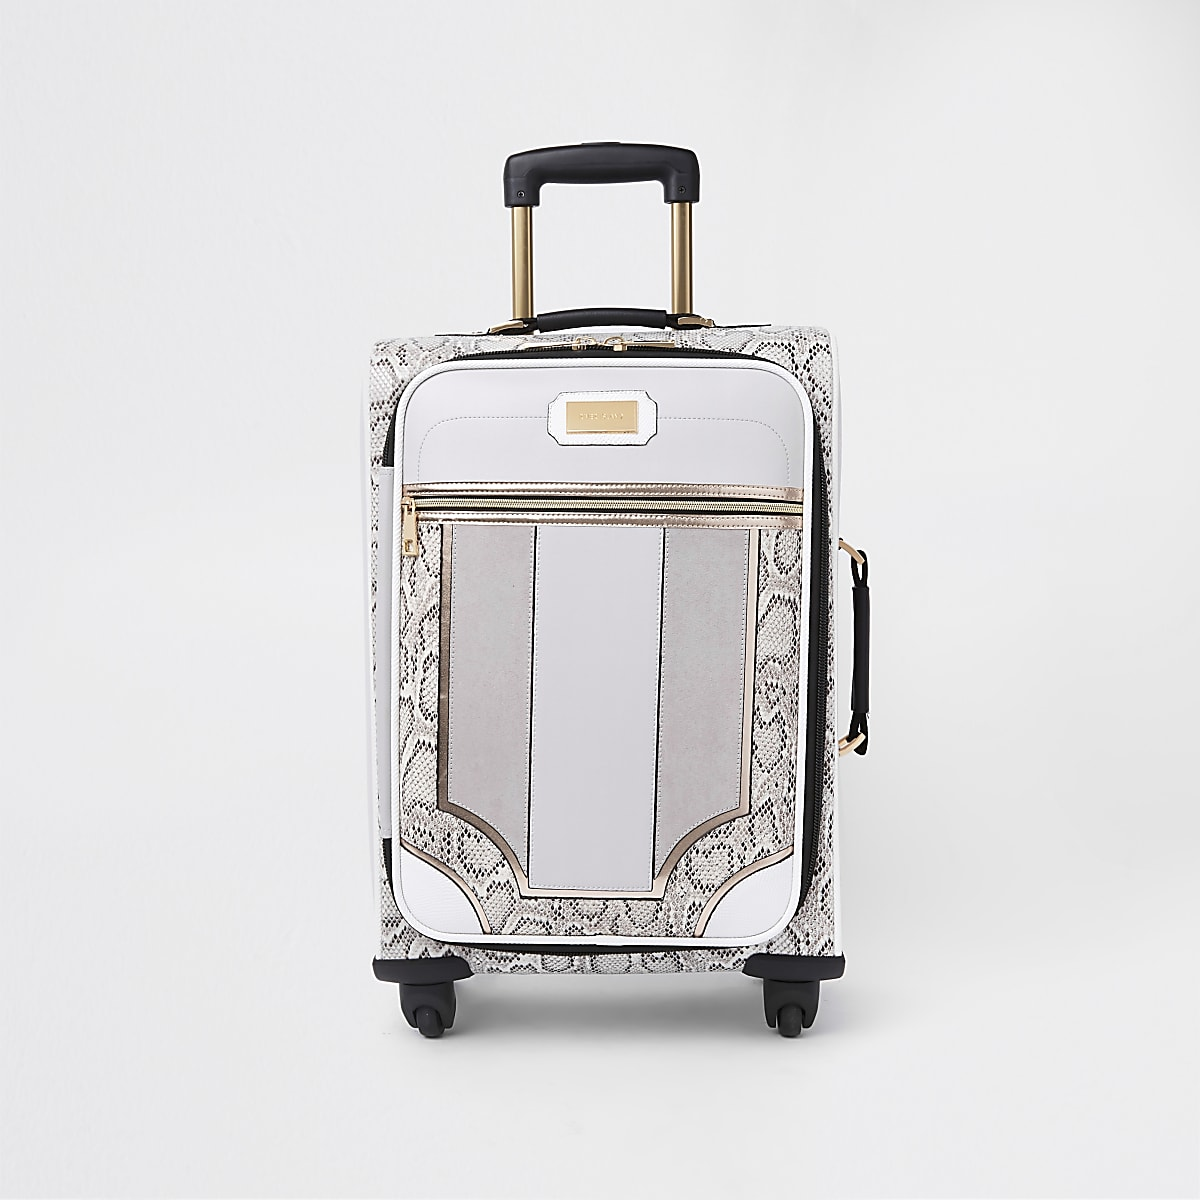 b4ad6a64060 Grey snake skin panel four wheel suitcase - Suitcases - Bags ...